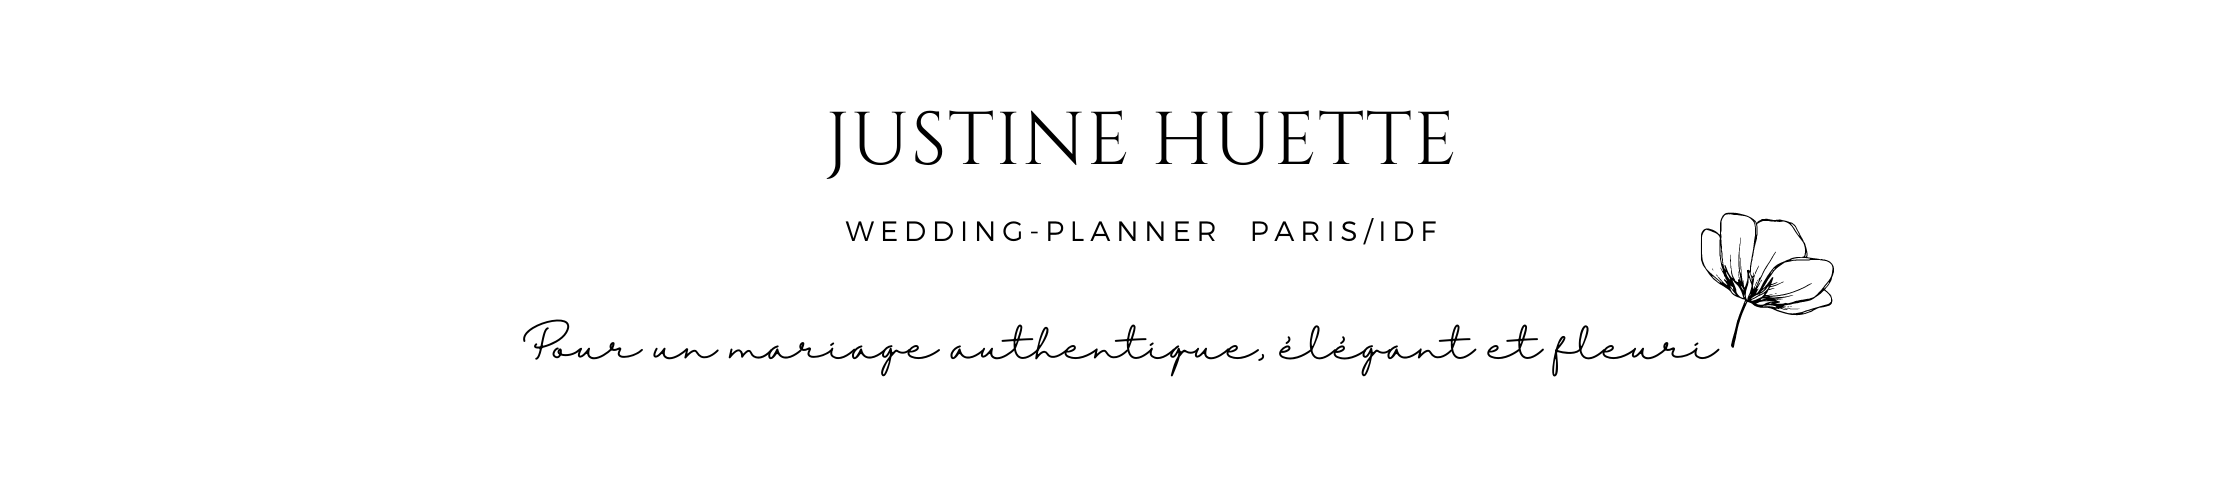 Justine Huette, créatrice de jolis moments - Wedding-Planner & Designer Paris/Ile-de-France (77/91/92/94)